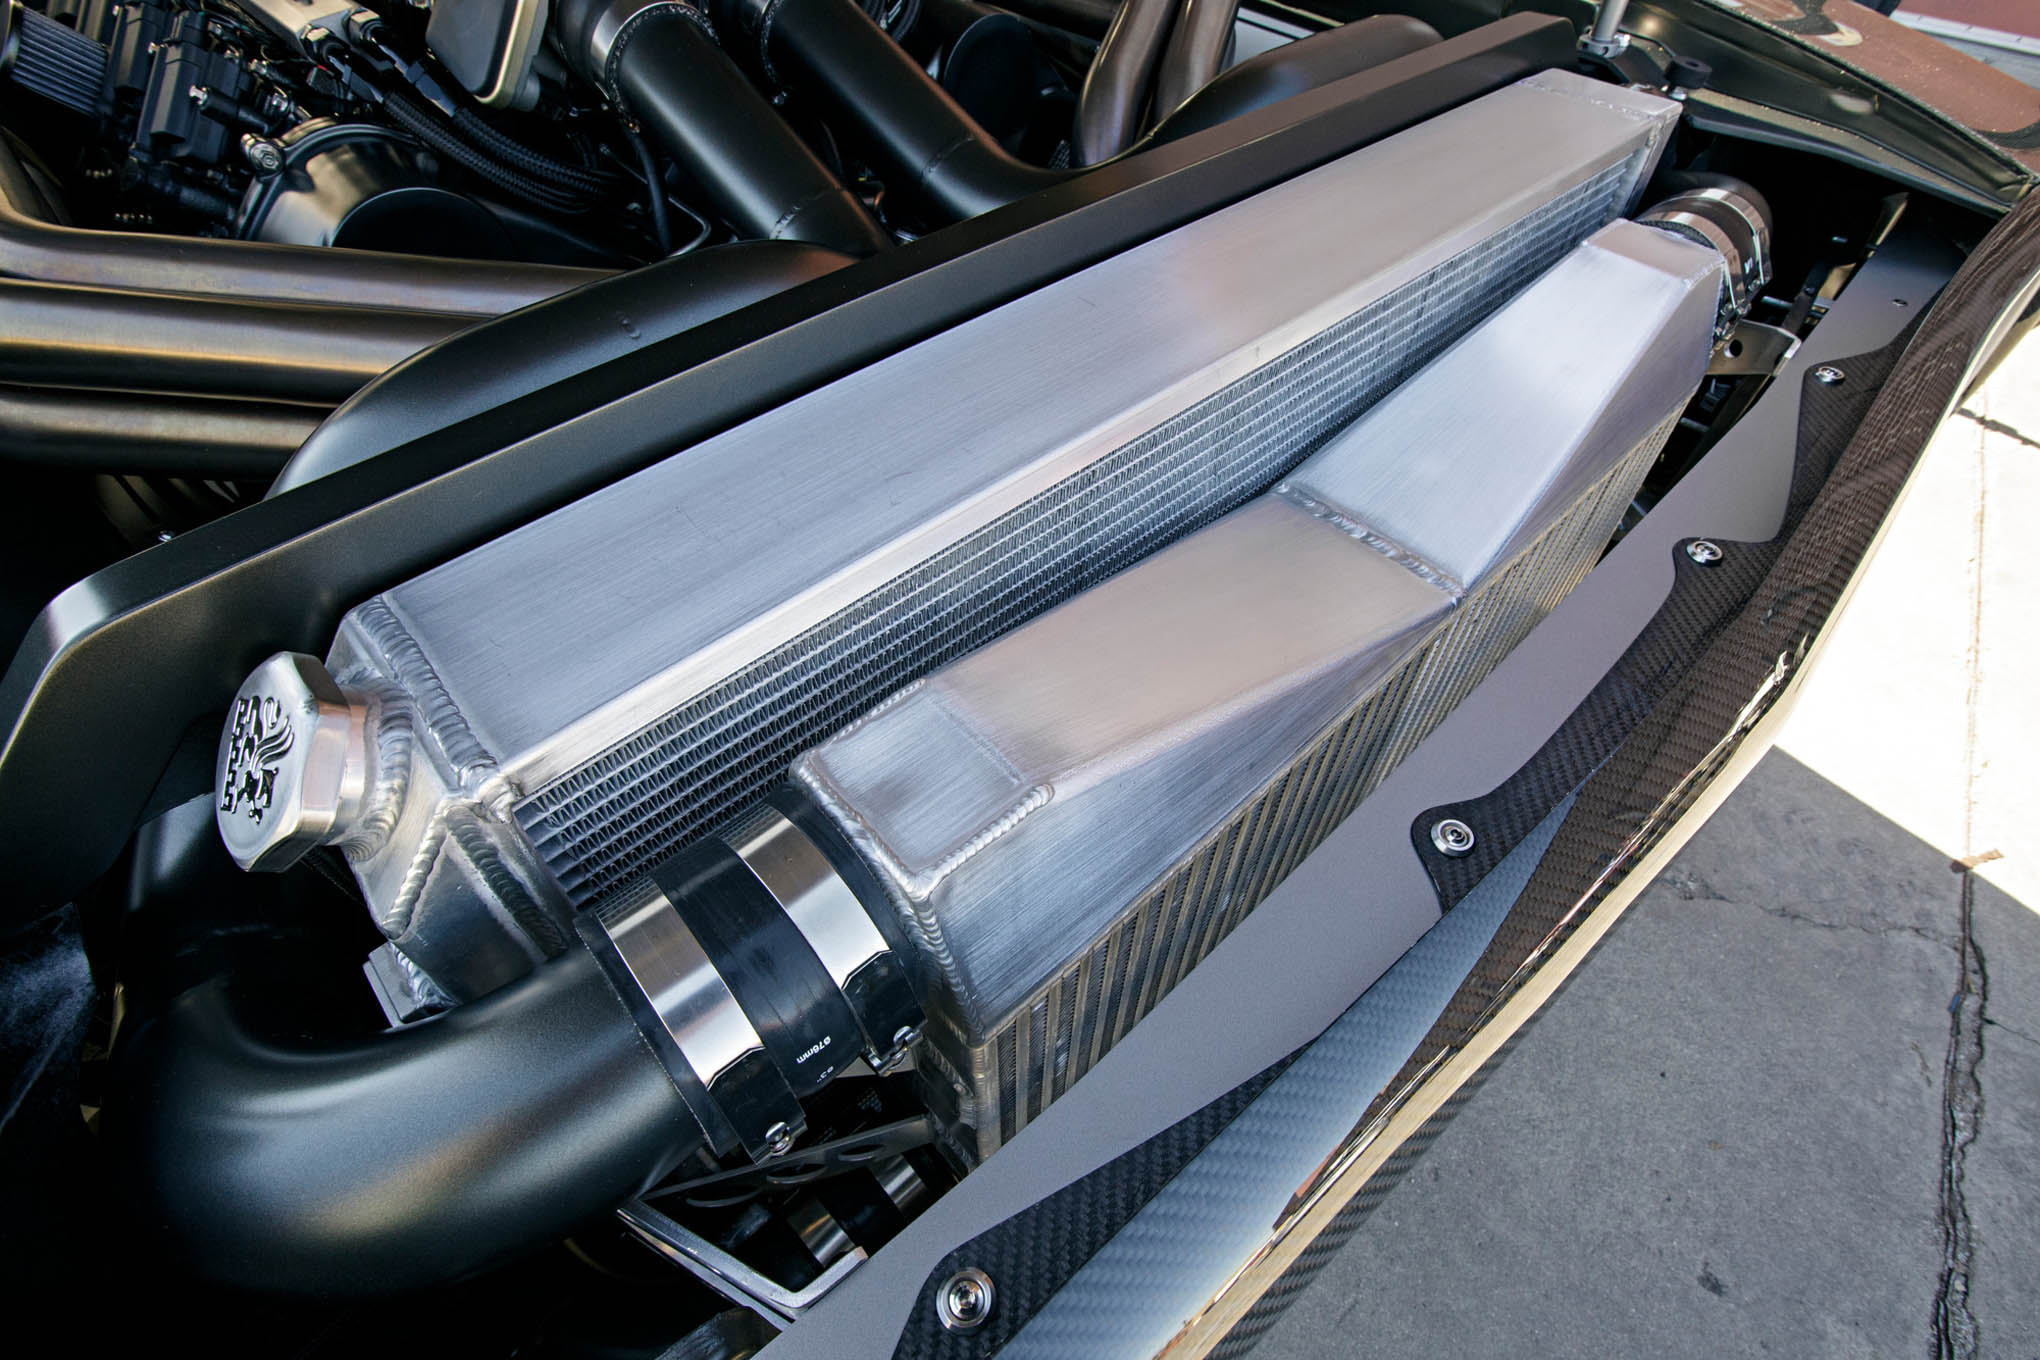 When an engine produces 1,650 hp, it needs some serious cooling. A massive charge cooler and radiator fill the nose of the Charger.